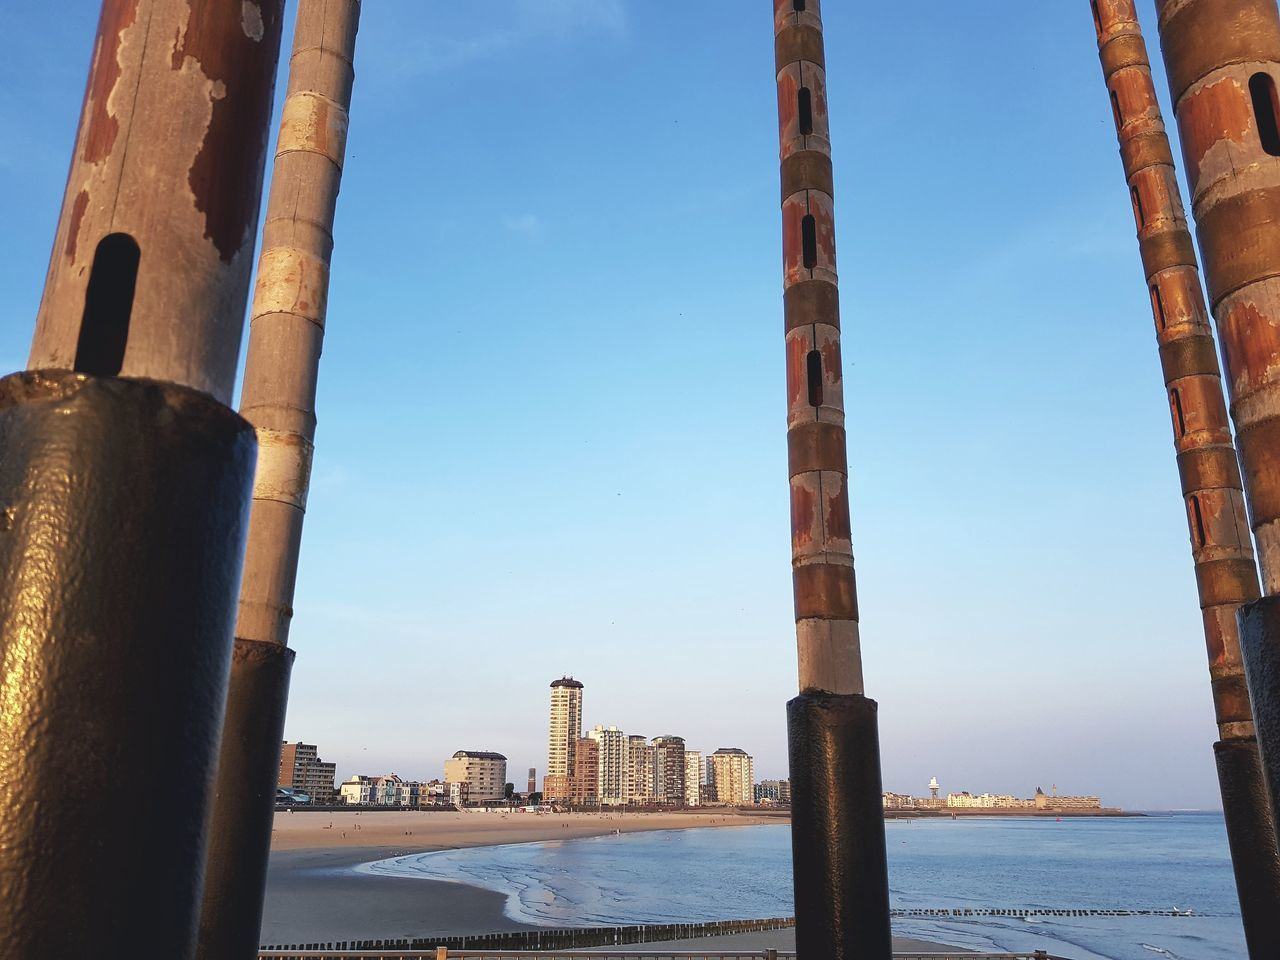 Water Sky Architecture Built Structure No People Blue City Clear Sky Cityscape Steel Scenics Historic Steel Structure  Dutchphotographer Eye4photography  Taking Pictures Taking Photos Backgrounds Wind Ornament Amazing View City Close-up Travel Destinations Dutch Cities Horizon Over Water